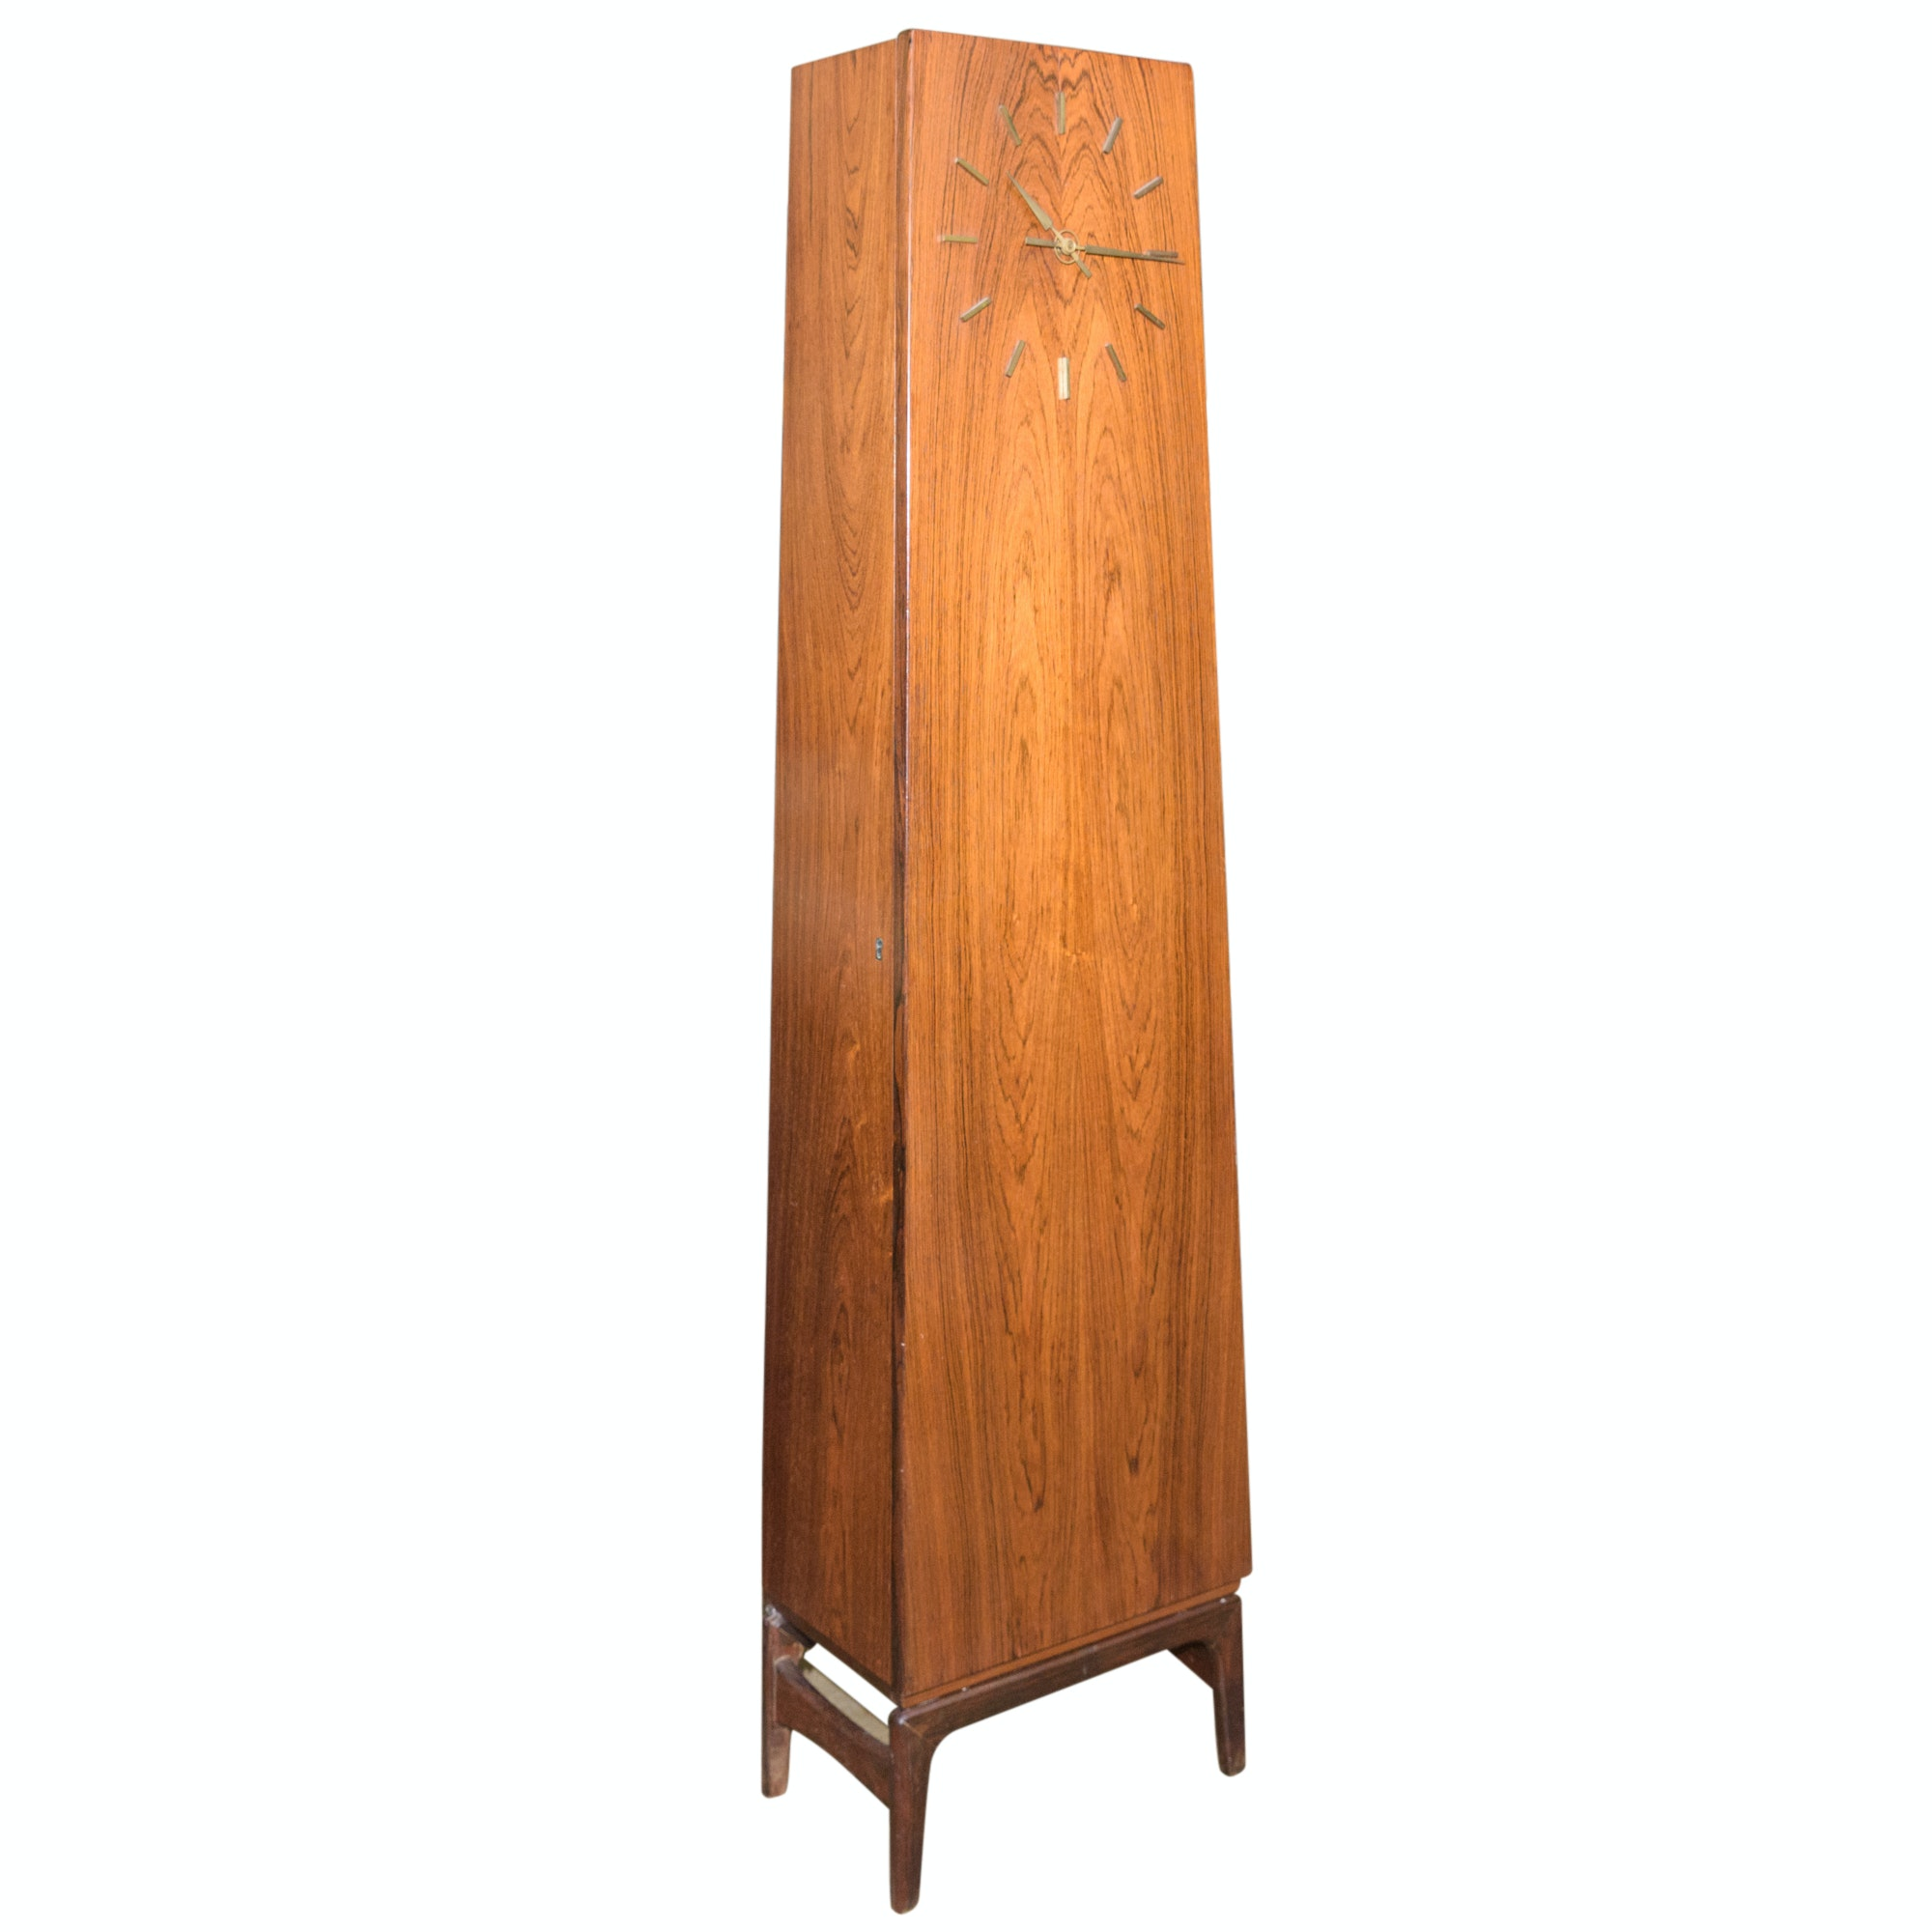 Danish Modern Style Teak Cabinet with Clock